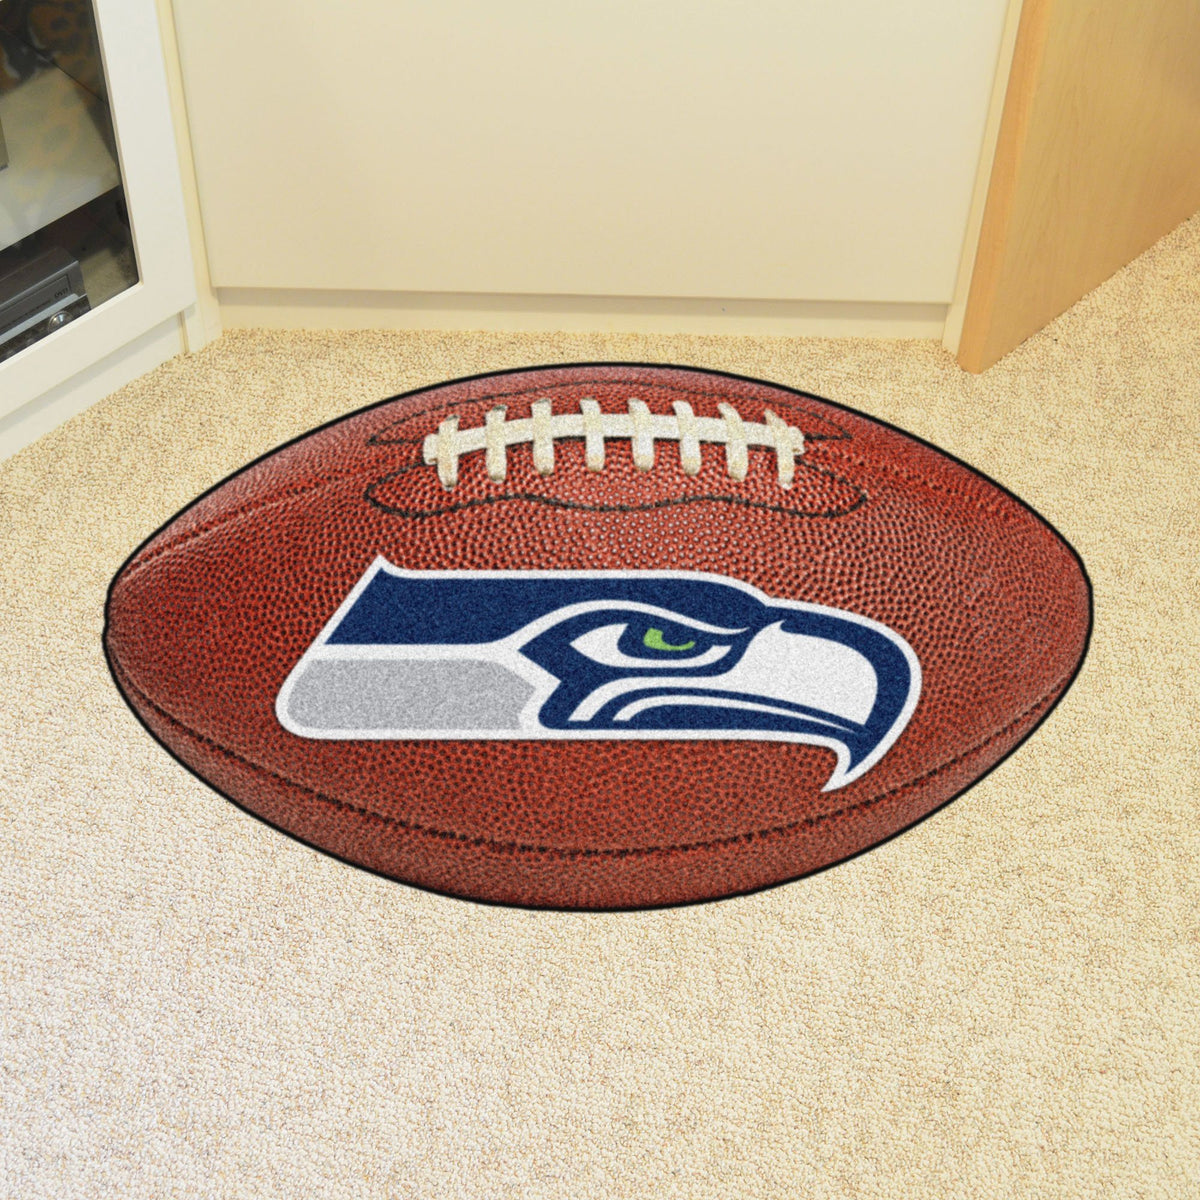 NFL - Football Mat NFL Mats, Custom Shape Rugs, Football Mat, NFL, Home Fan Mats Seattle Seahawks